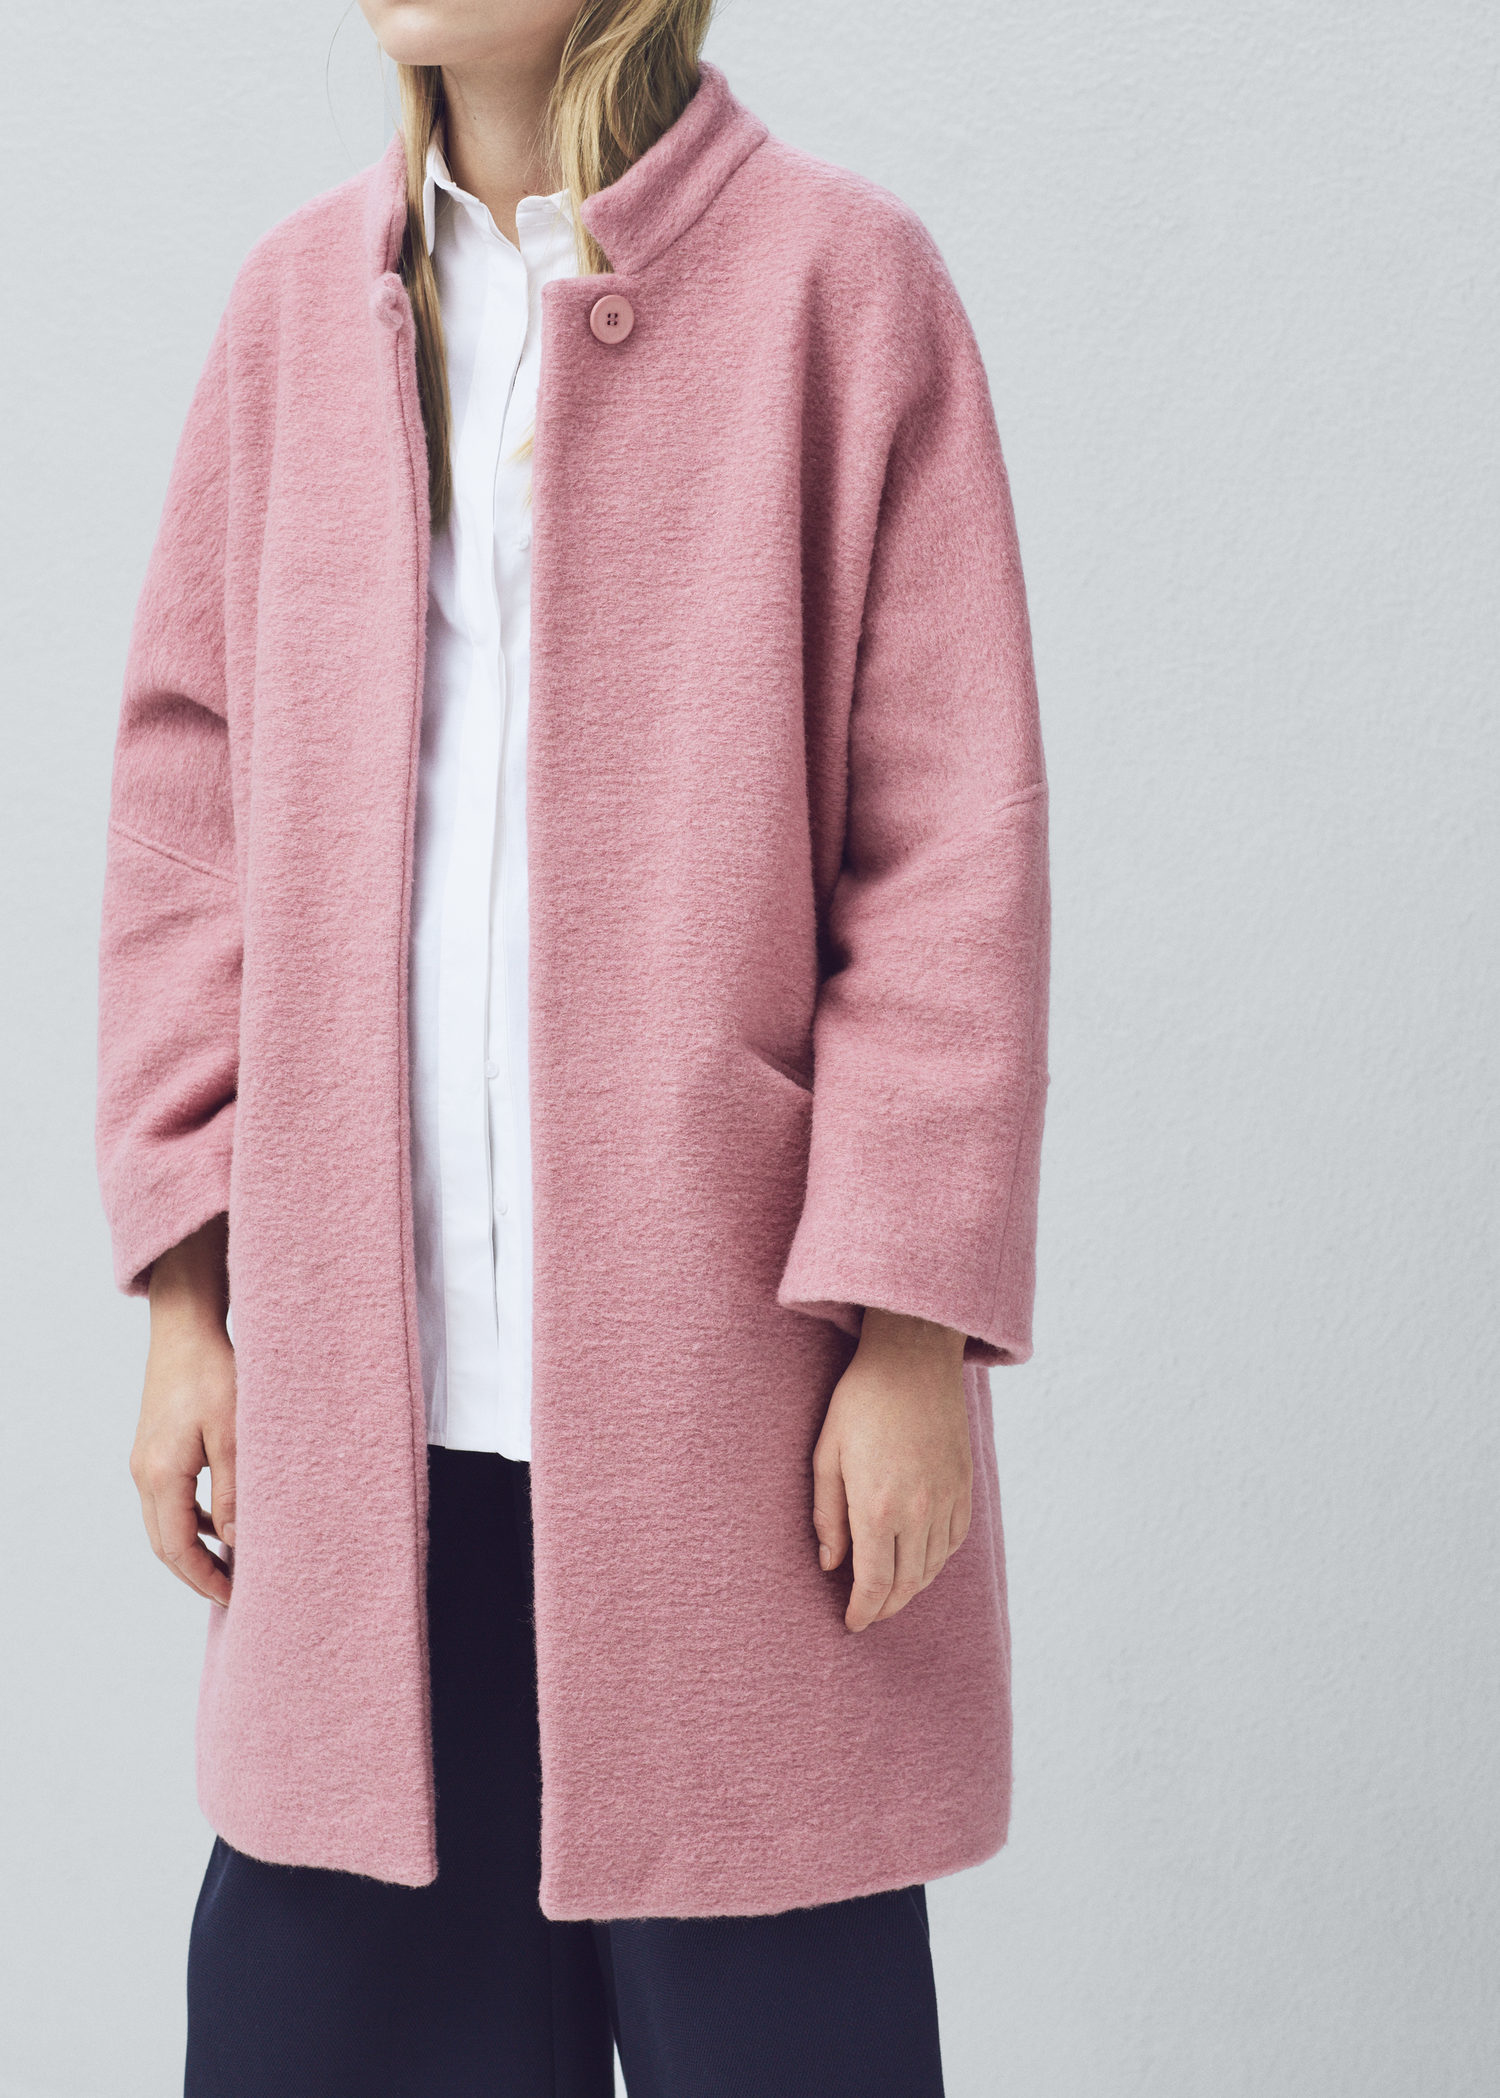 Mango Oversize Wool Coat in Pink | Lyst